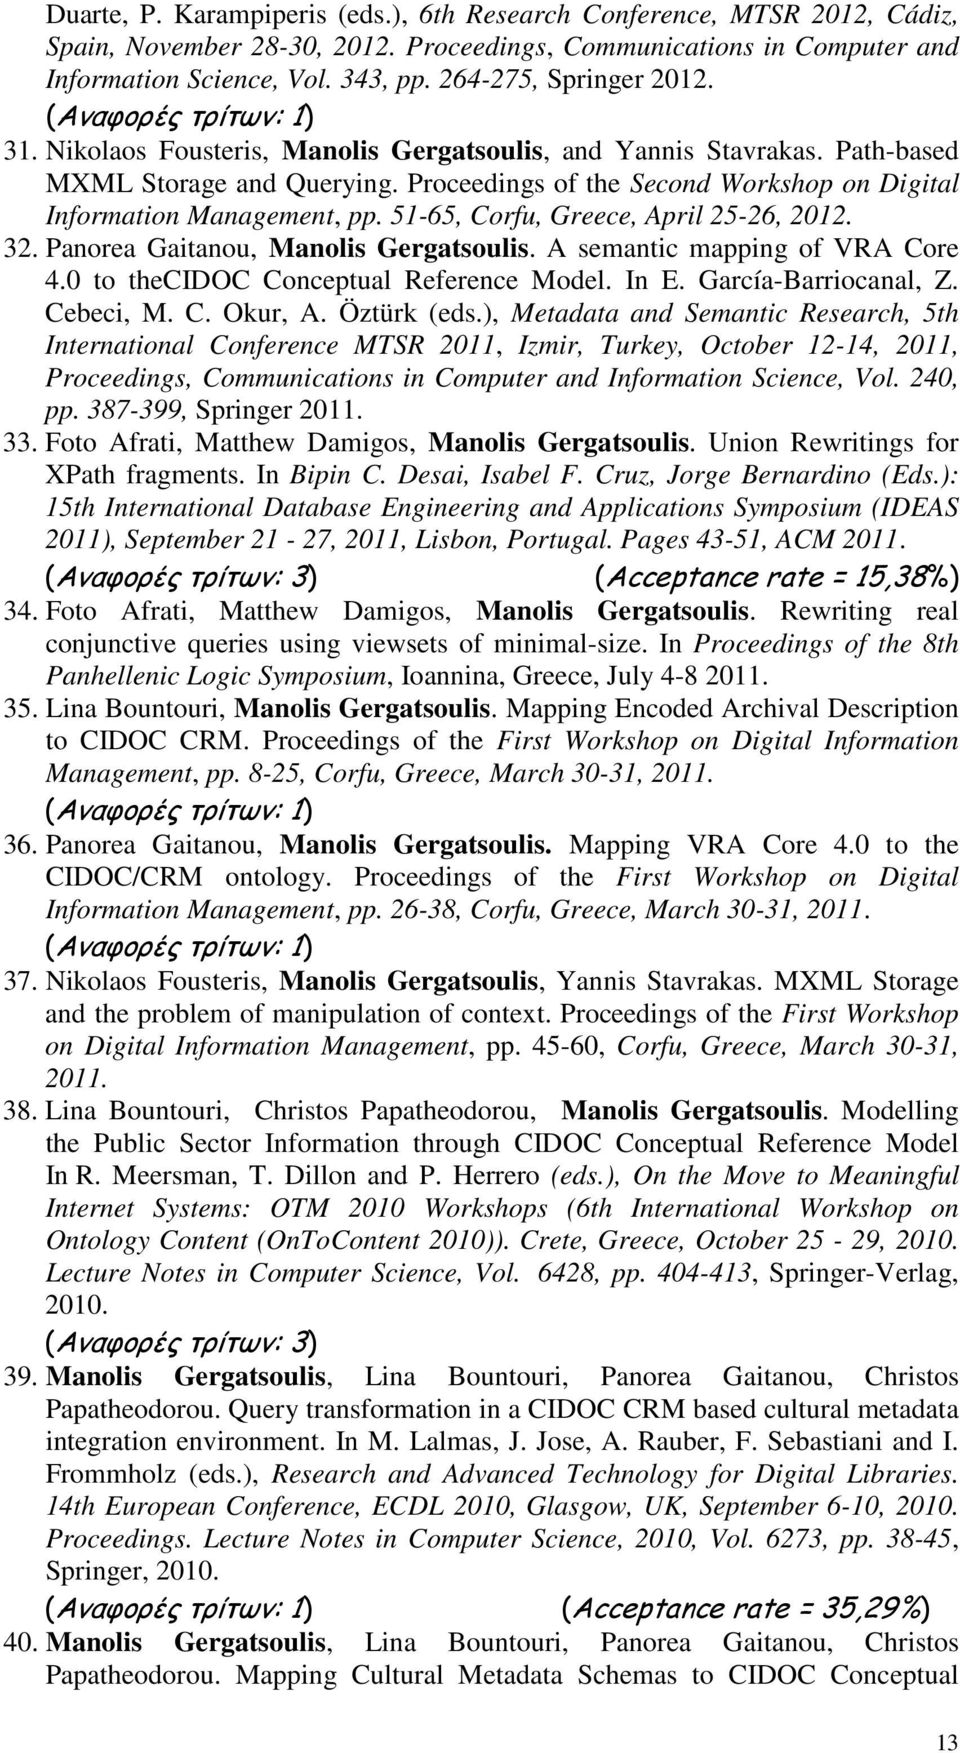 Proceedings of the Second Workshop on Digital Information Management, pp. 51-65, Corfu, Greece, April 25-26, 2012. 32. Panorea Gaitanou, Manolis Gergatsoulis. A semantic mapping of VRA Core 4.